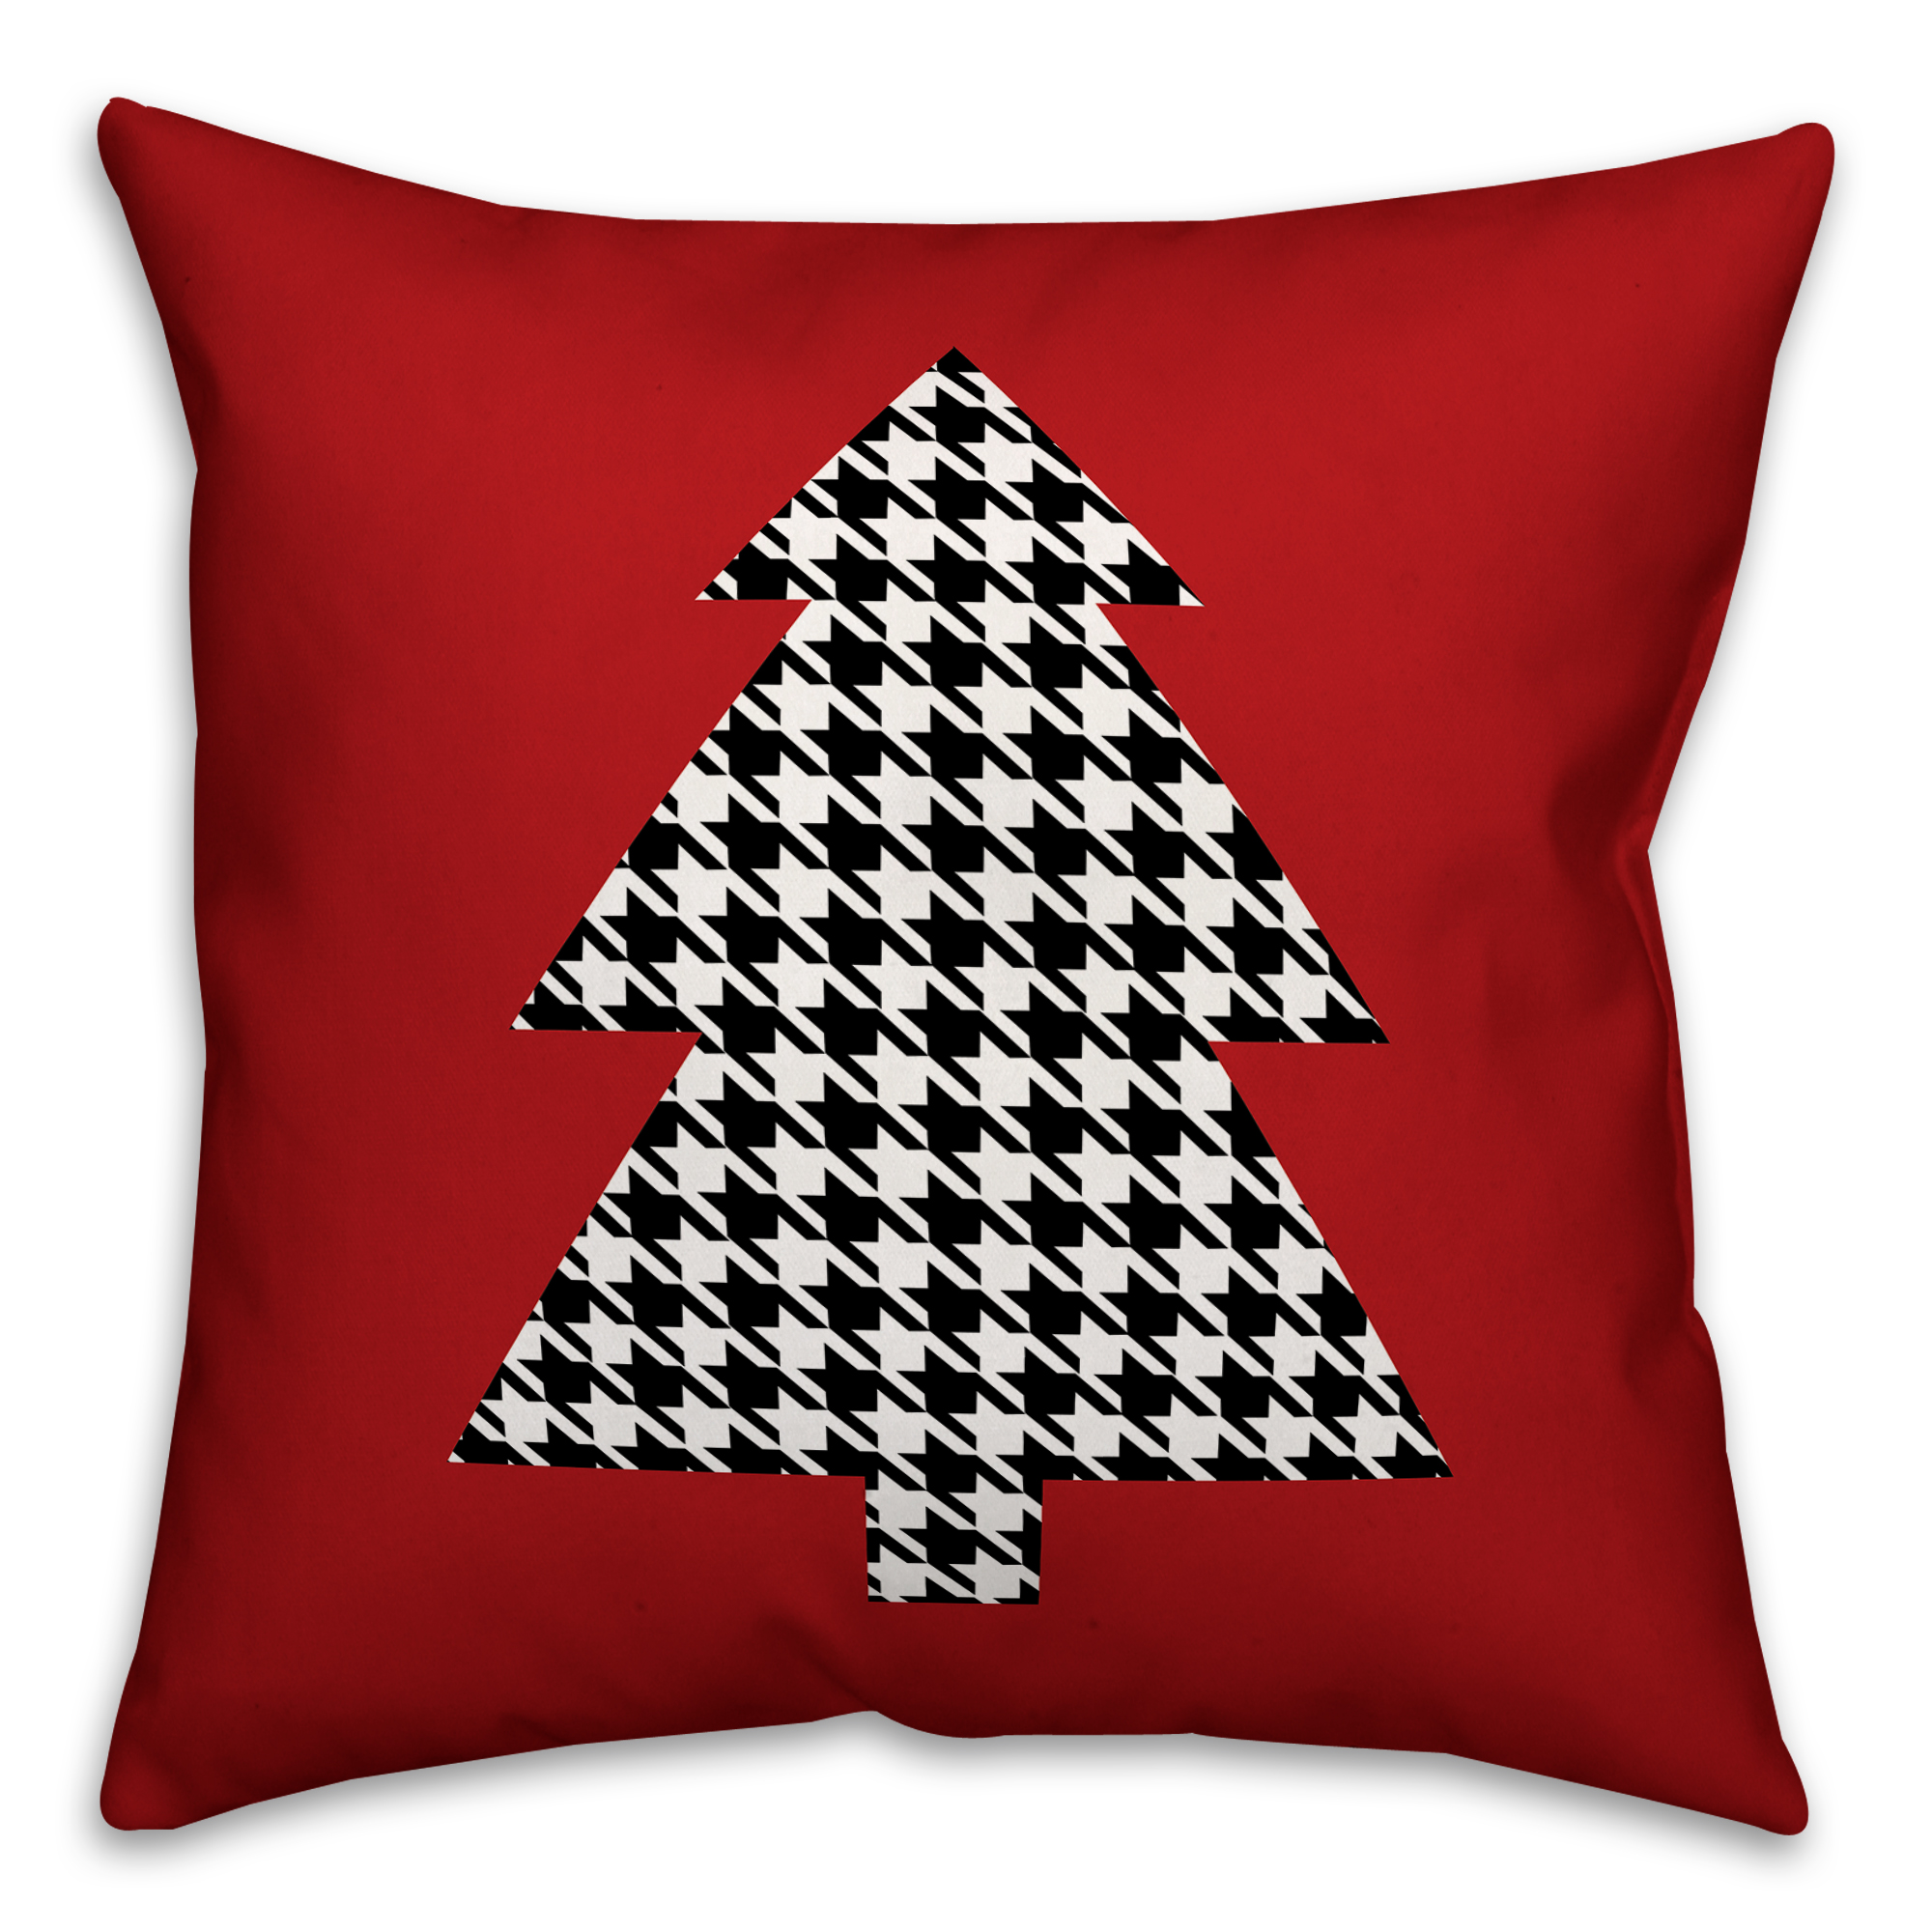 Houndstooth Christmas Tree 18x18 Spun Poly Pillow